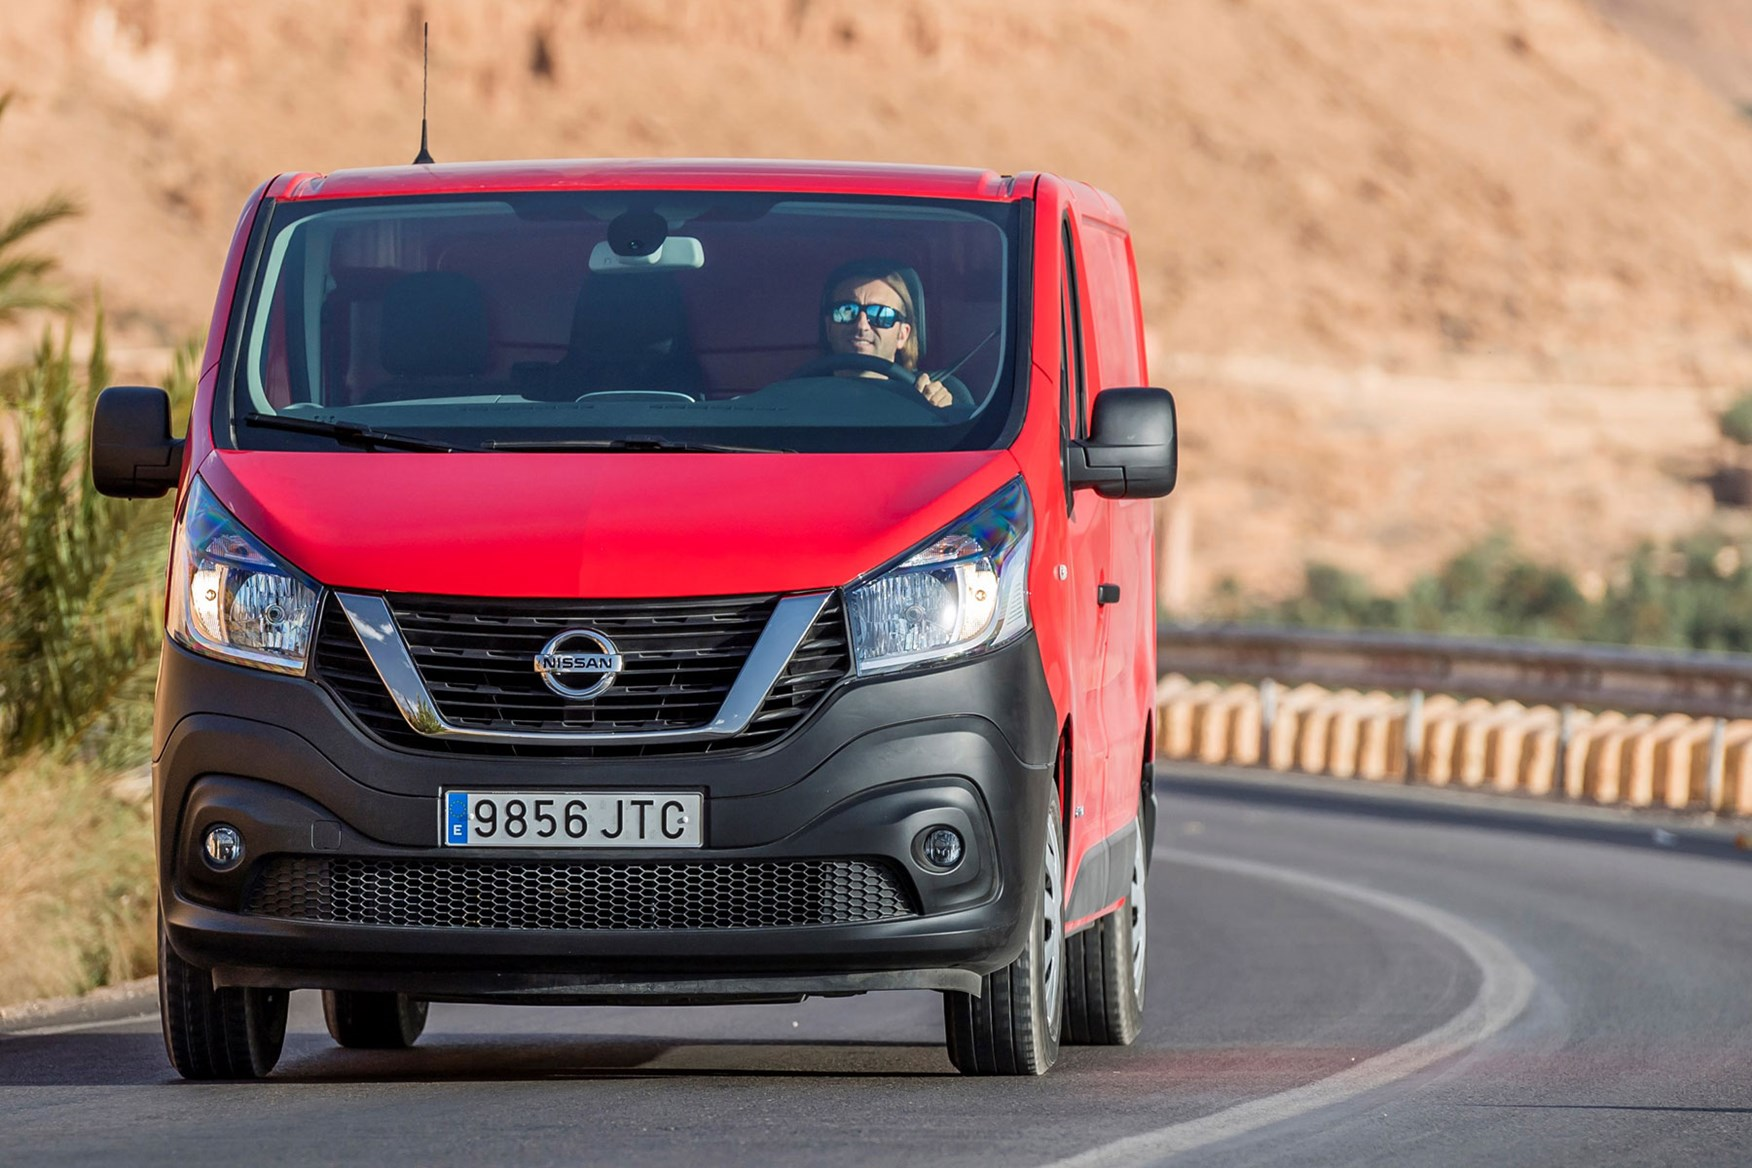 Nissan NV300 - red, driving in Morocco, front view, 2016